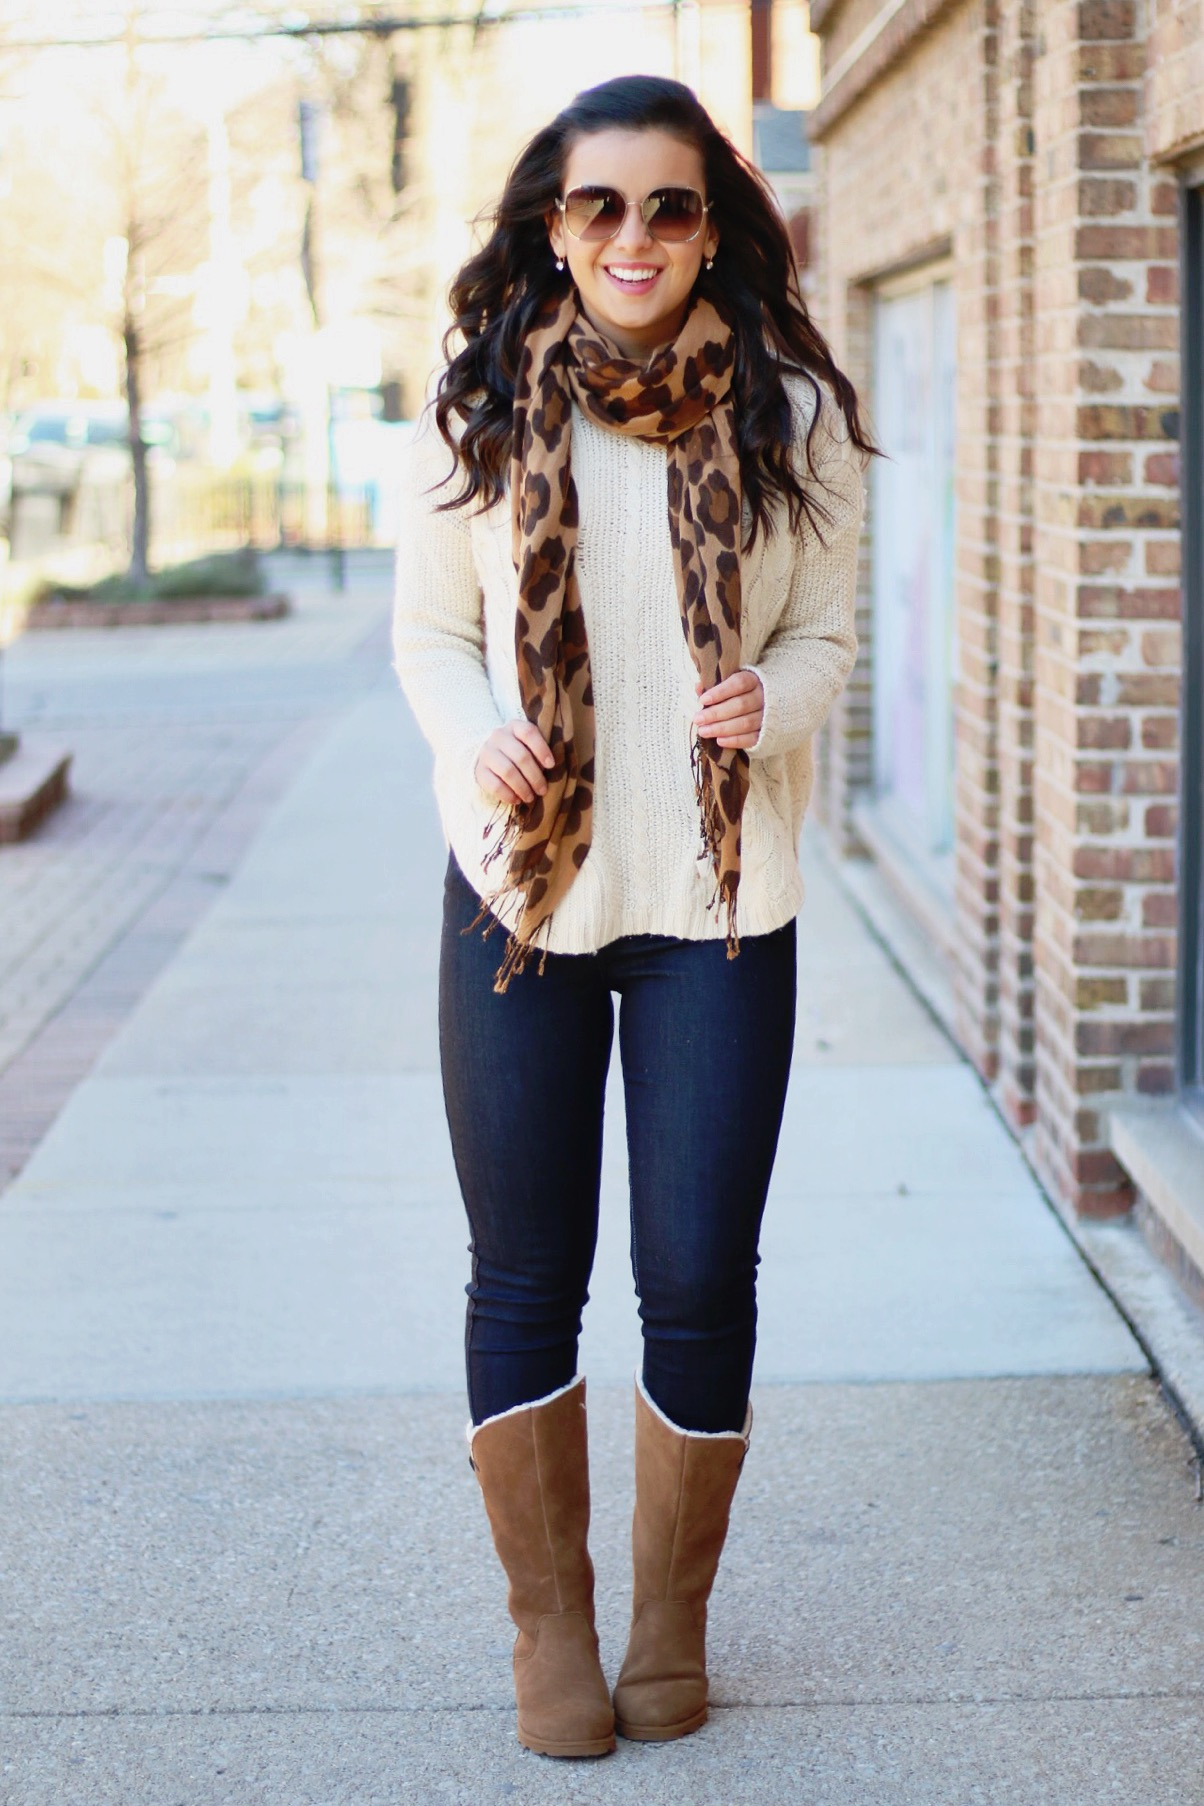 COZY for WINTER with BEAR PAW, COZY for WINTER thanks to Bearpaw and 6pm.com